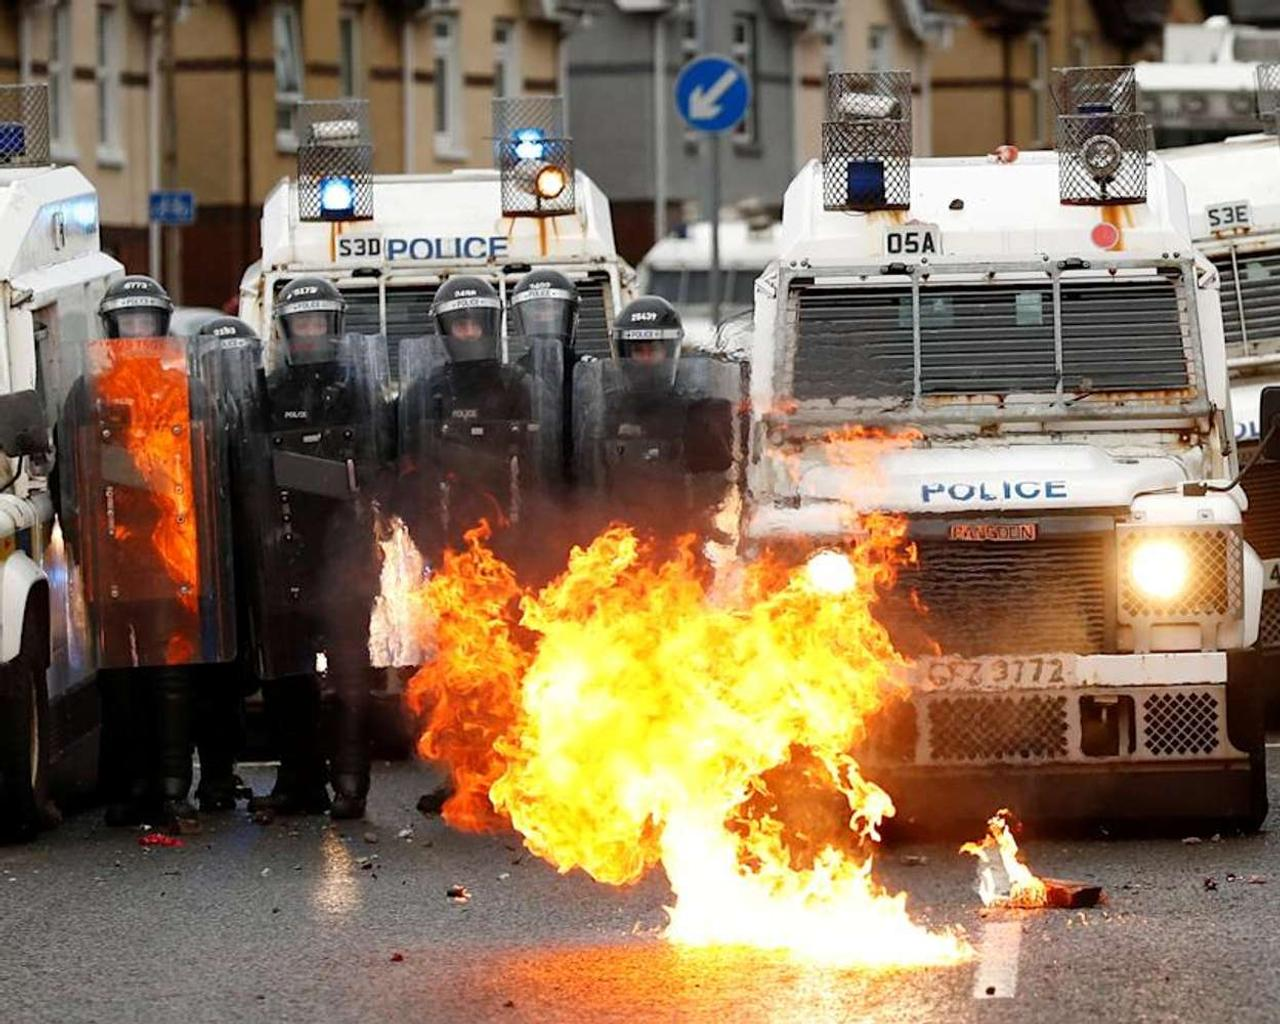 Northern Ireland is experiencing a wave of violent protests, bringing back painful memories of 'the troubles.'